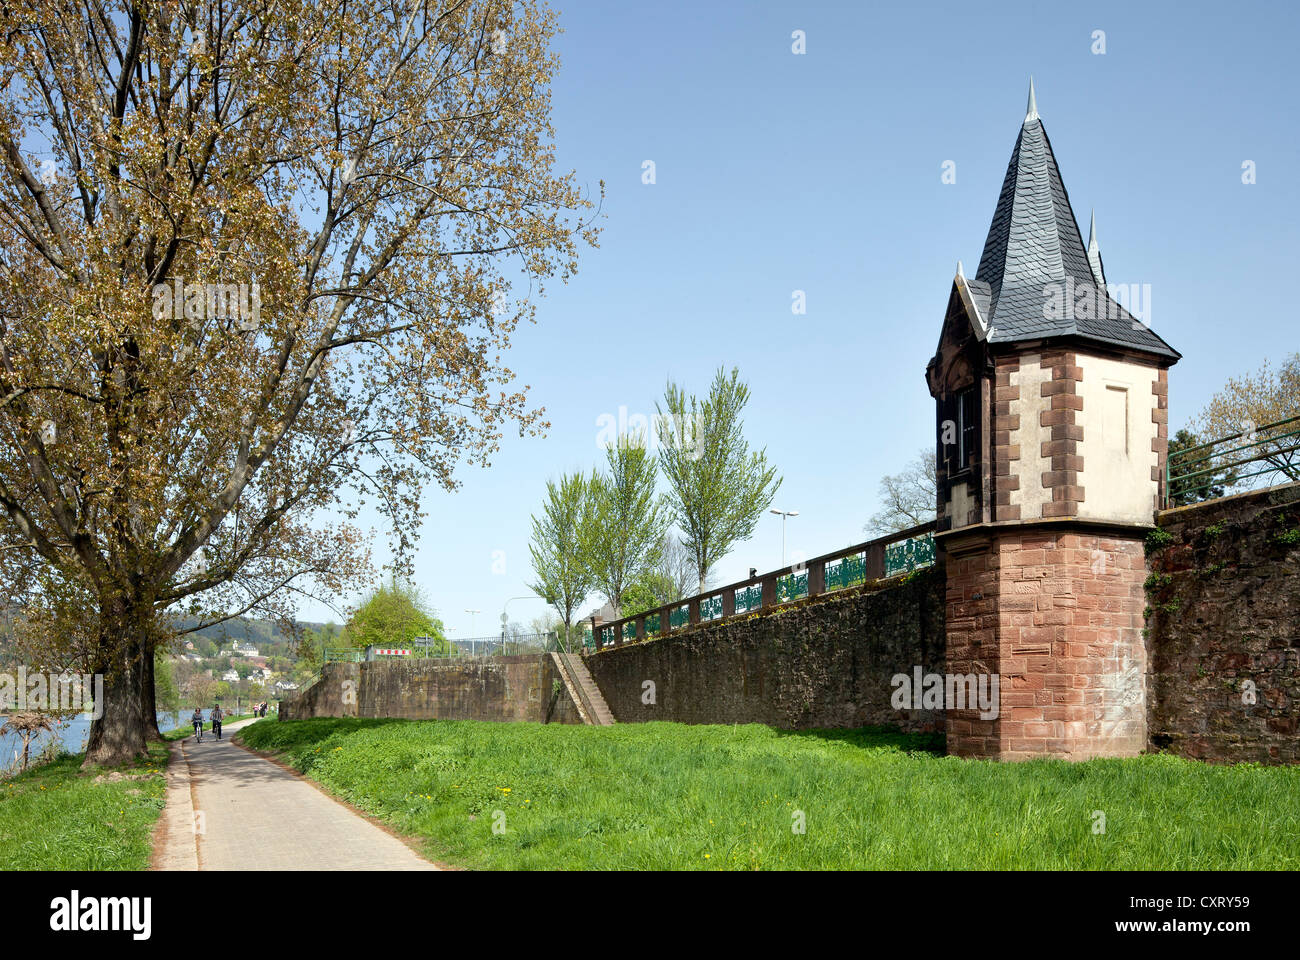 City walls and level building, the Moselle promenade, Trier, Rhineland-Palatinate, Germany, Europe, PublicGround - Stock Image